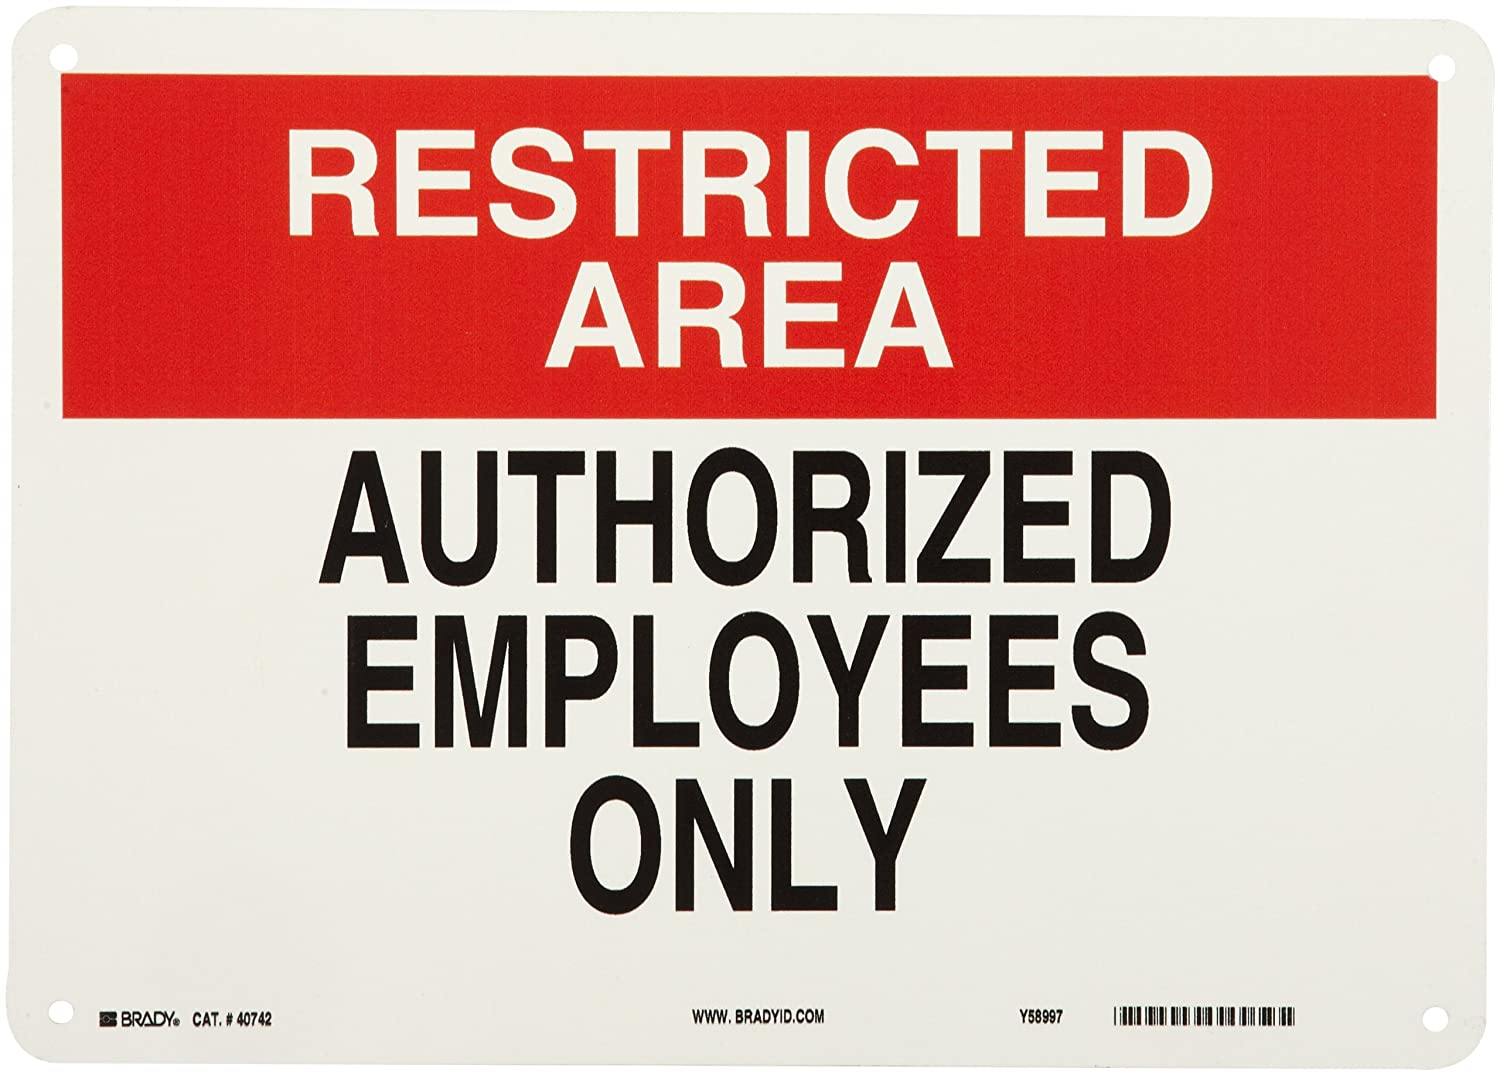 Legend Authorized Employees Only Header Restricted Area Brady 40742 14 Width x 10 Height B-555 Aluminum Red and Black on White Admittance Sign